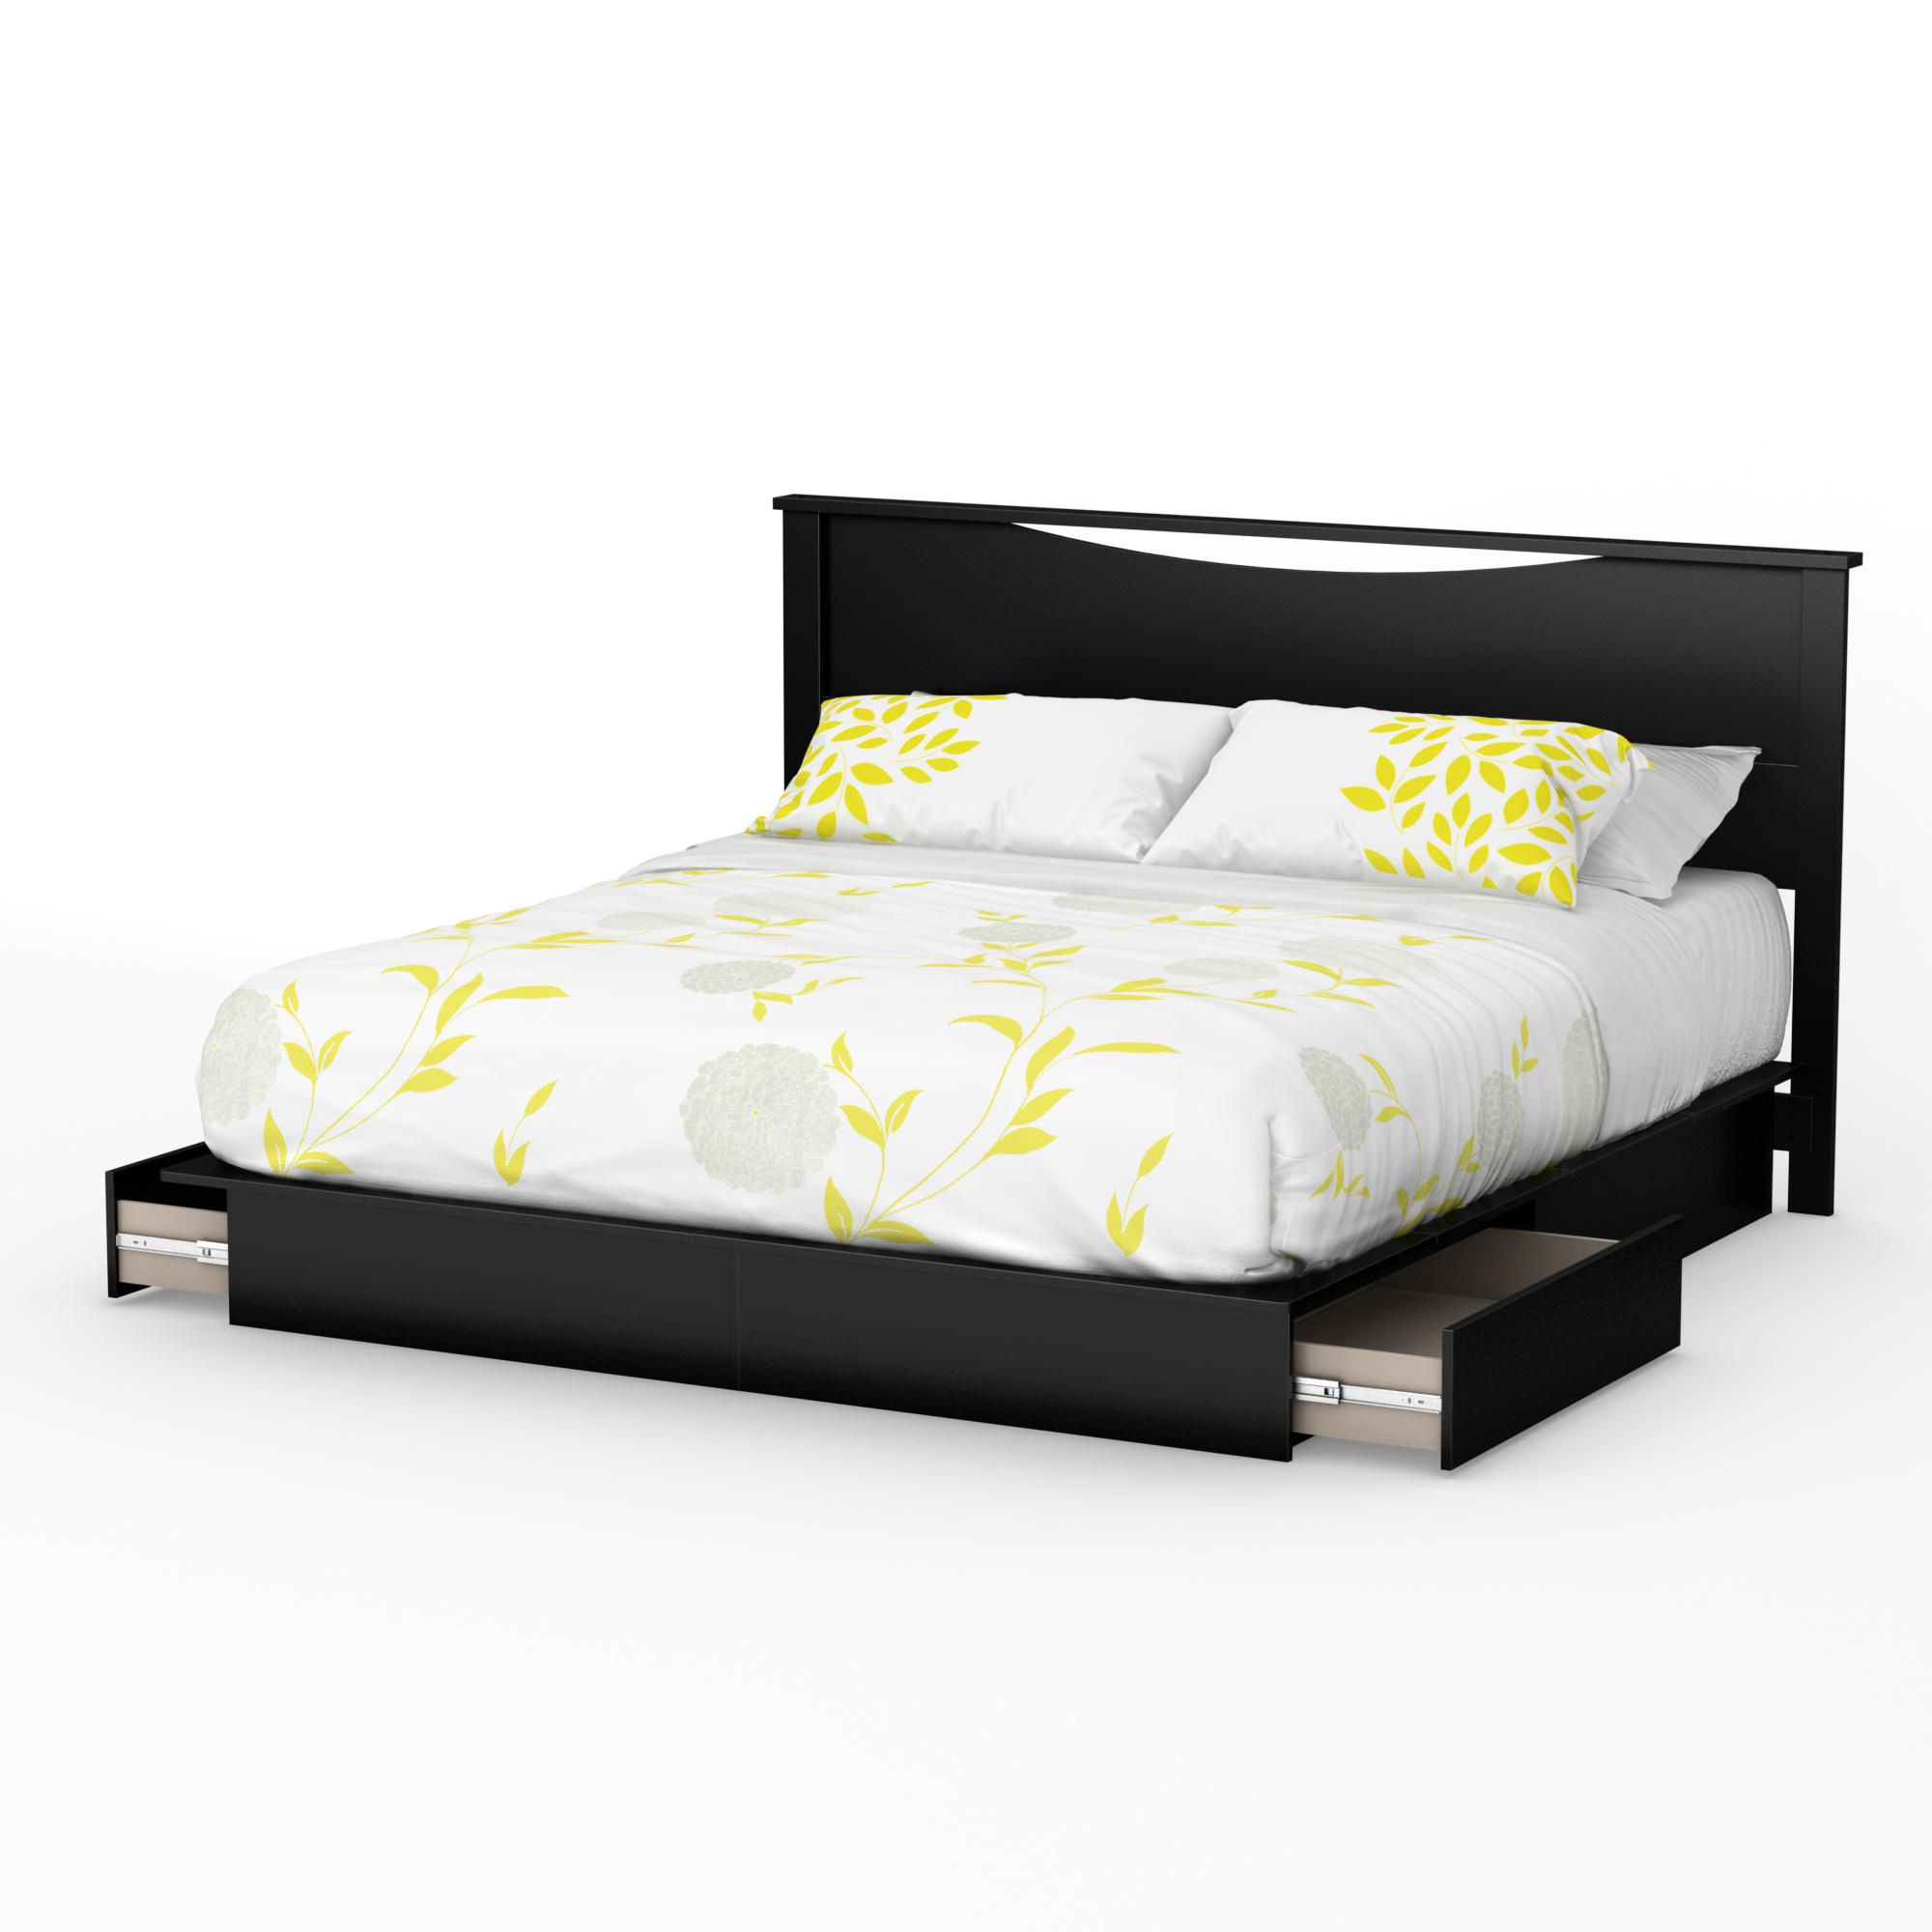 "south shore soho collection king platform bed (78"") with drawers"